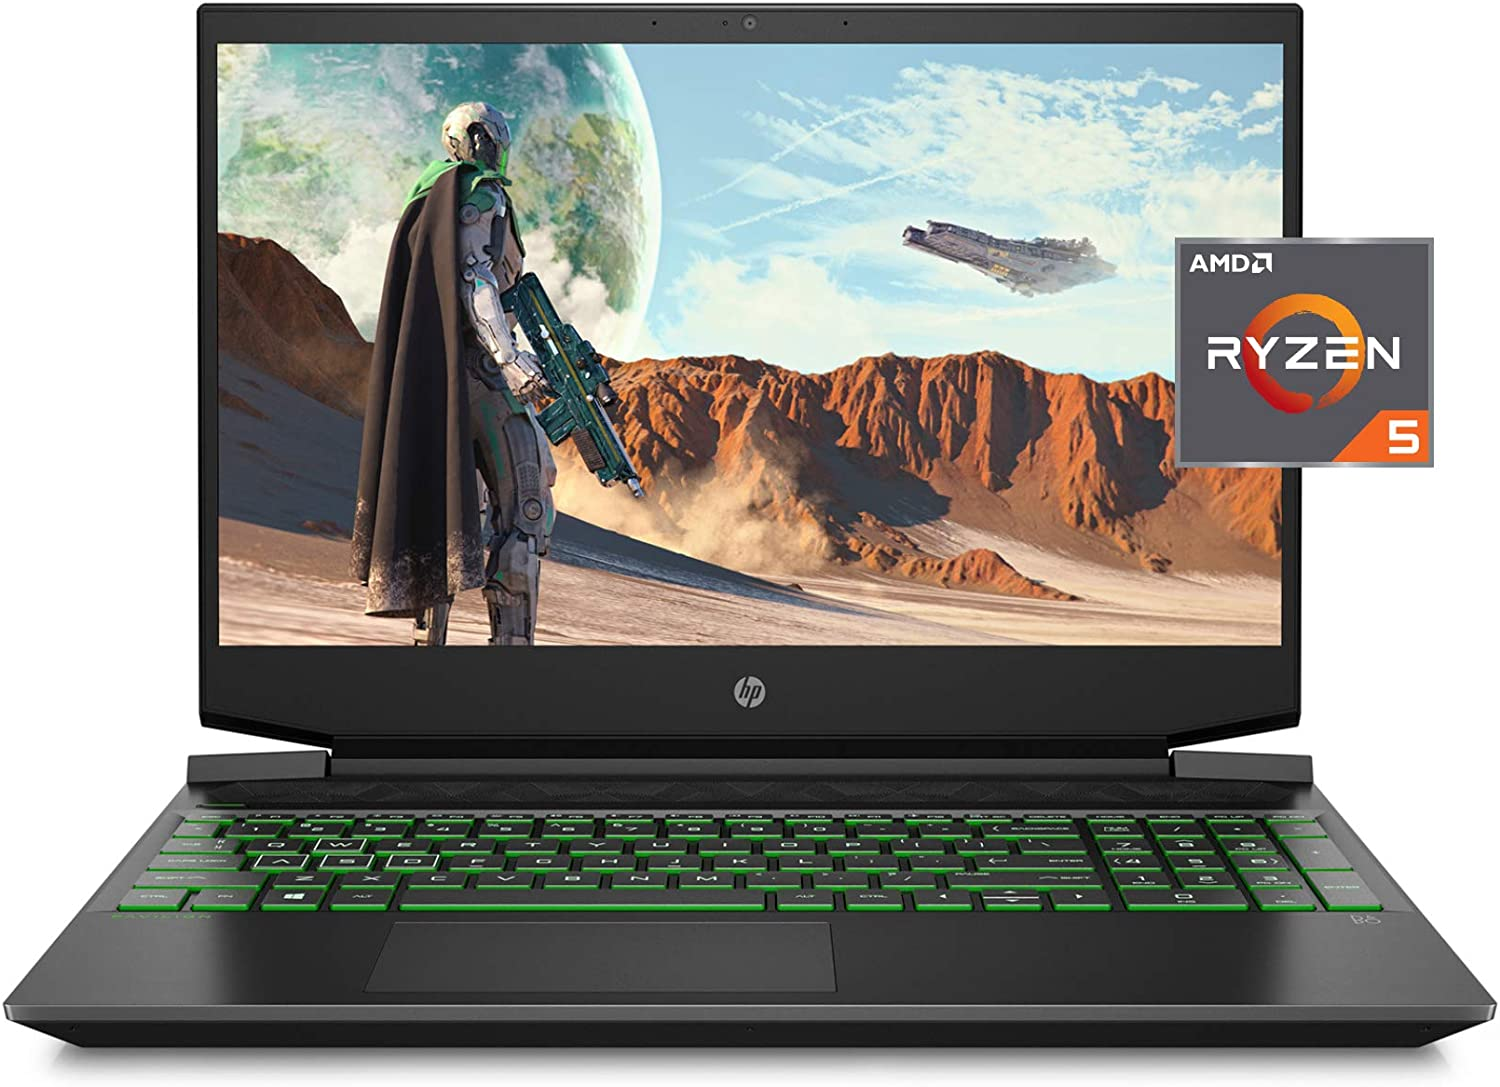 "HP Pavilion Gaming 15 Laptop, NVIDIA GeForce GTX 1650, AMD Ryzen 5 4600H, 8GB DDR4 RAM, 512 GB PCIe NVMe SSD, 15.6"" Full HD, Windows 10 Home, Backlit Keyboard (15-ec1010nr, 2020 Model)"